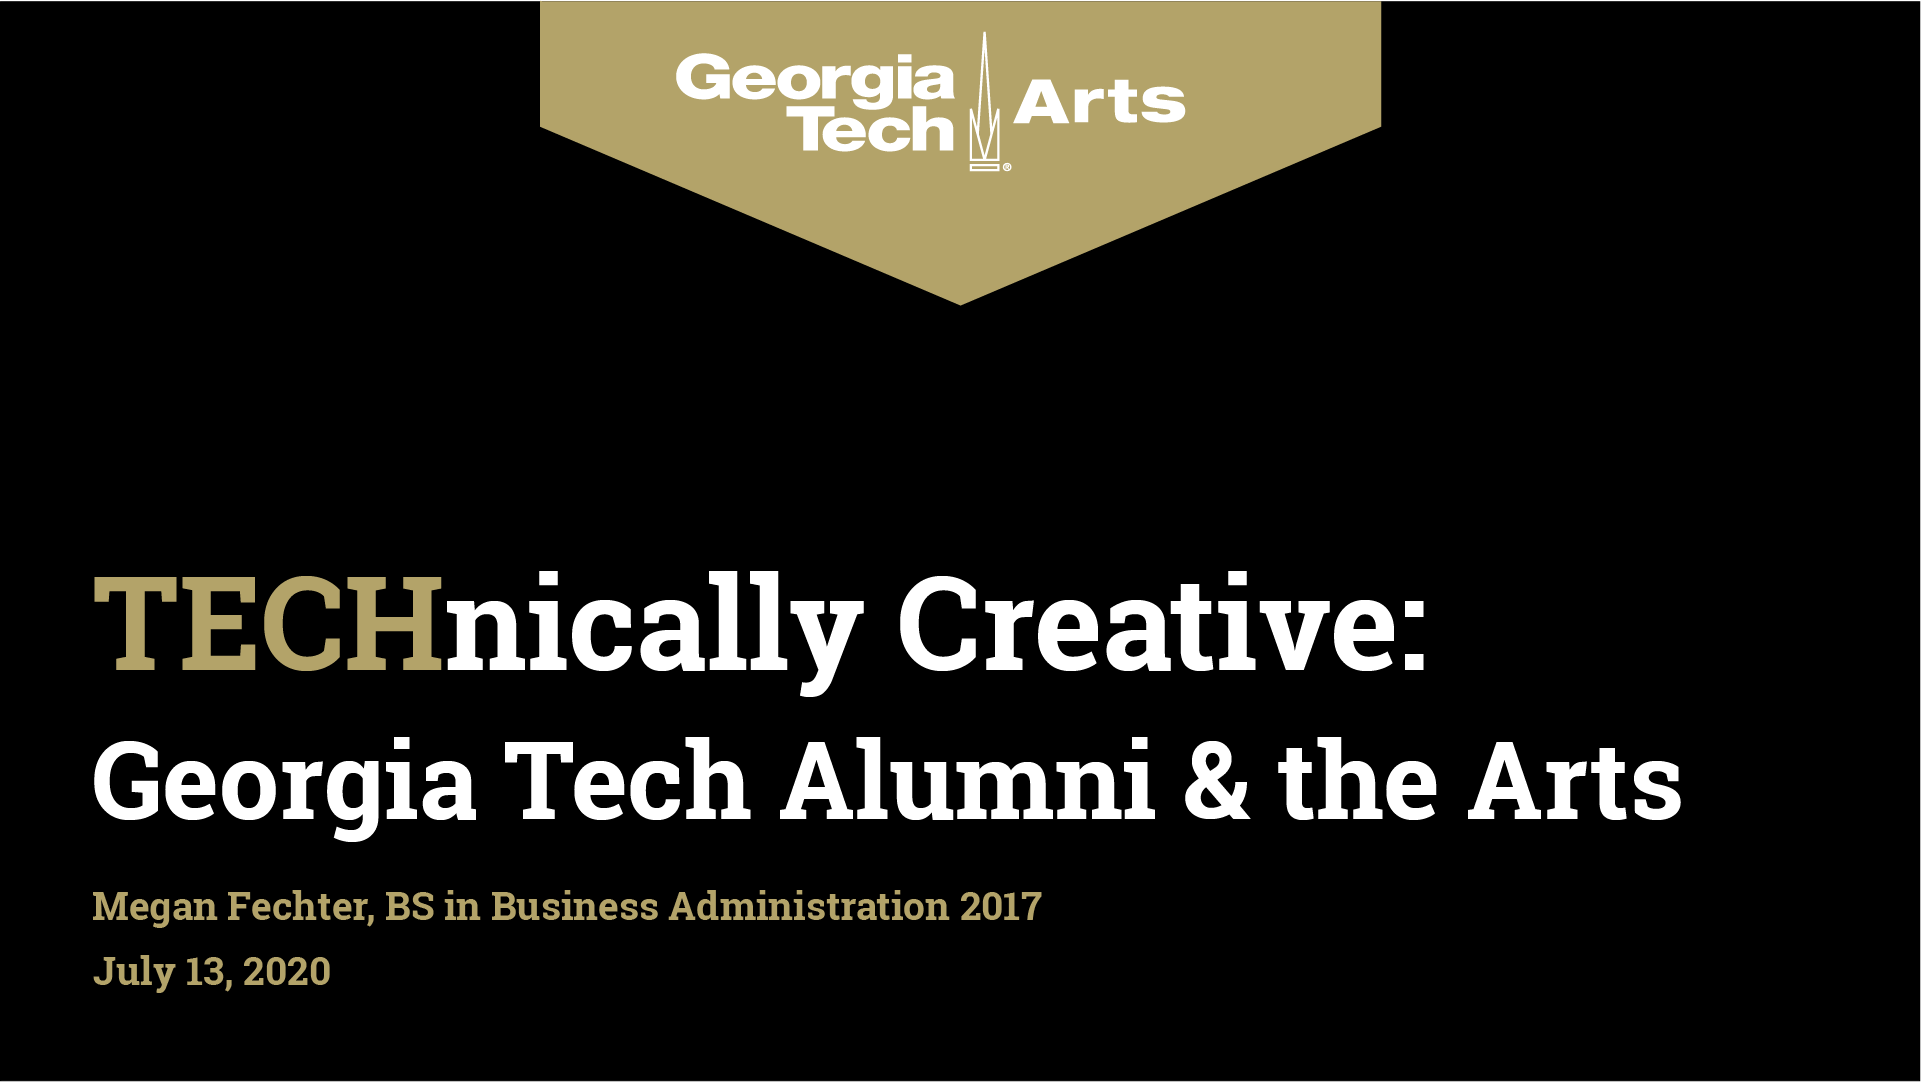 Georgia Tech Arts TECHnically Creative: Georgia Tech Alumni & the Arts Megan Fechter, BS in Business Administration 2017, on July 13, 2020